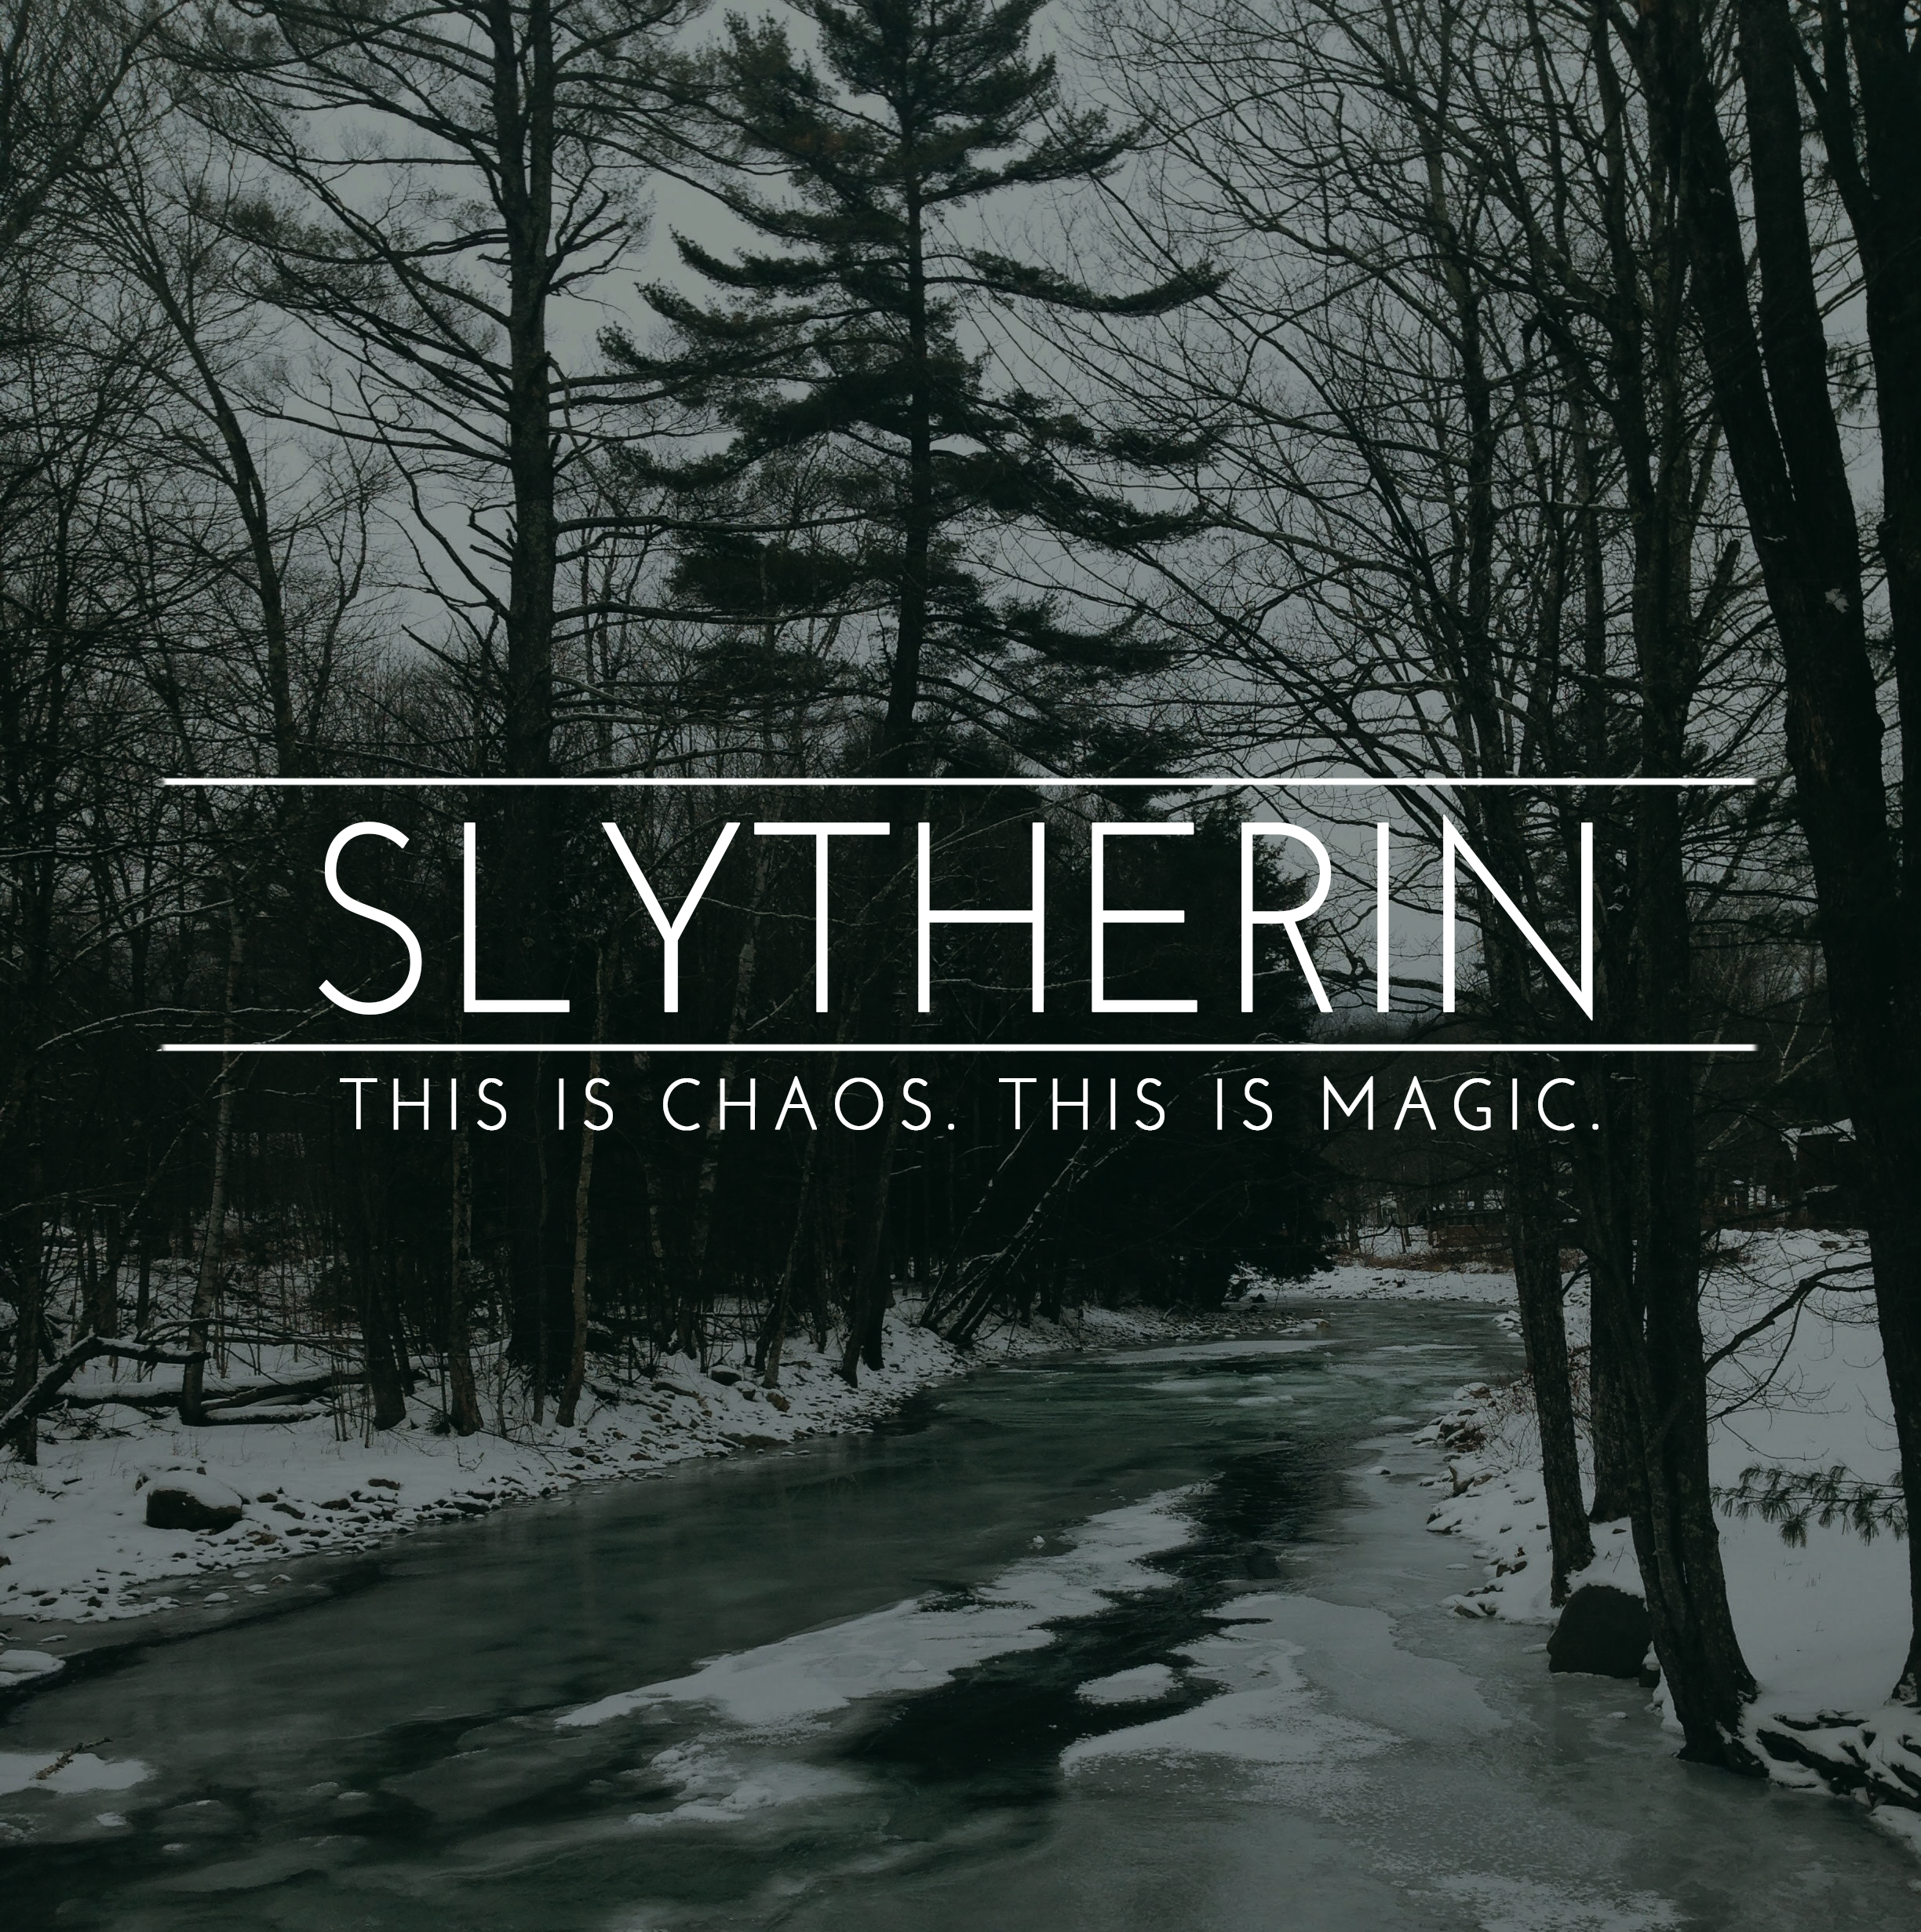 Slytherin Pride, This is chaos, This is magic